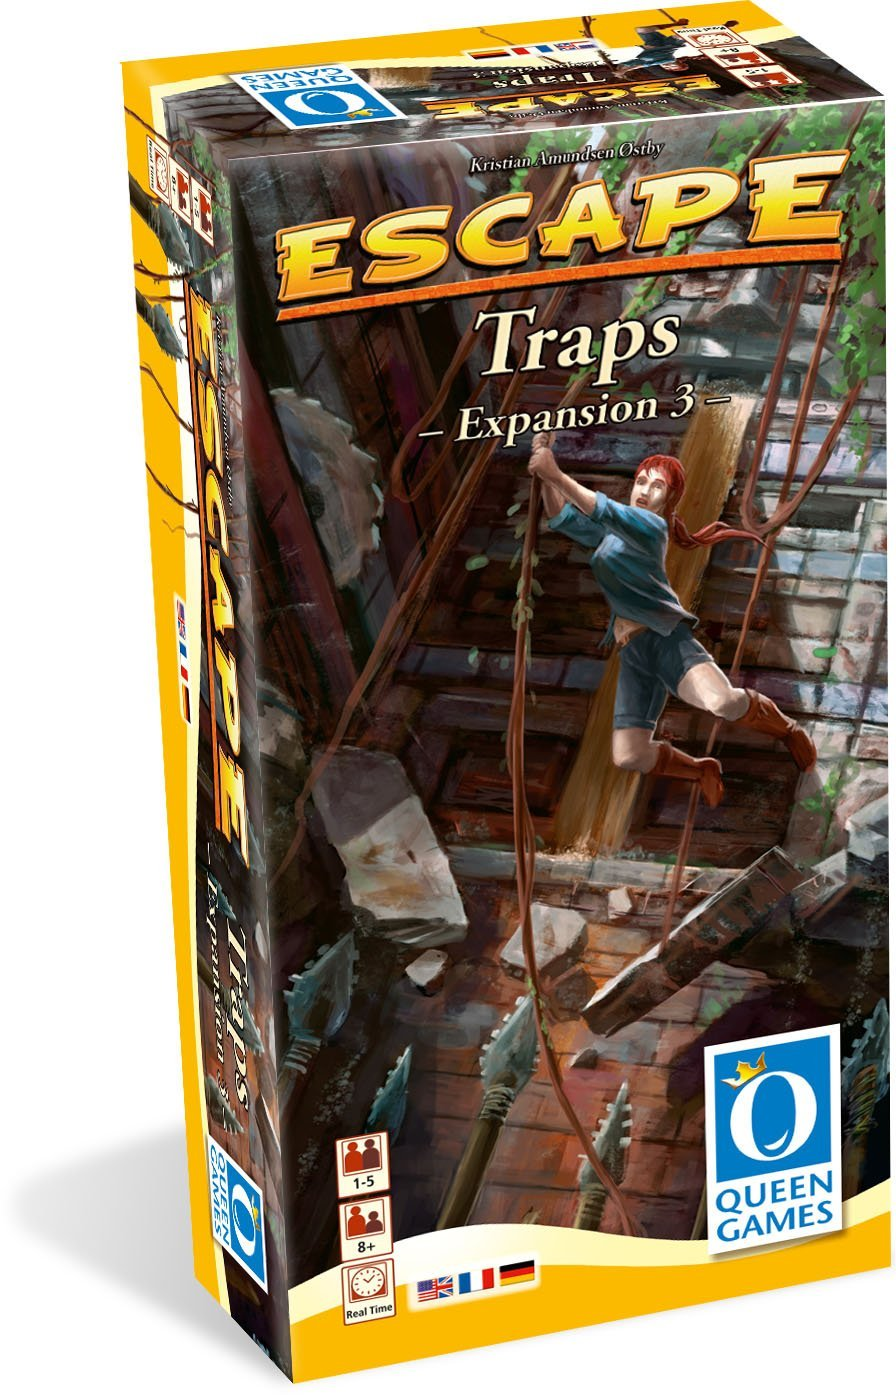 Escape: Traps Expansion 3